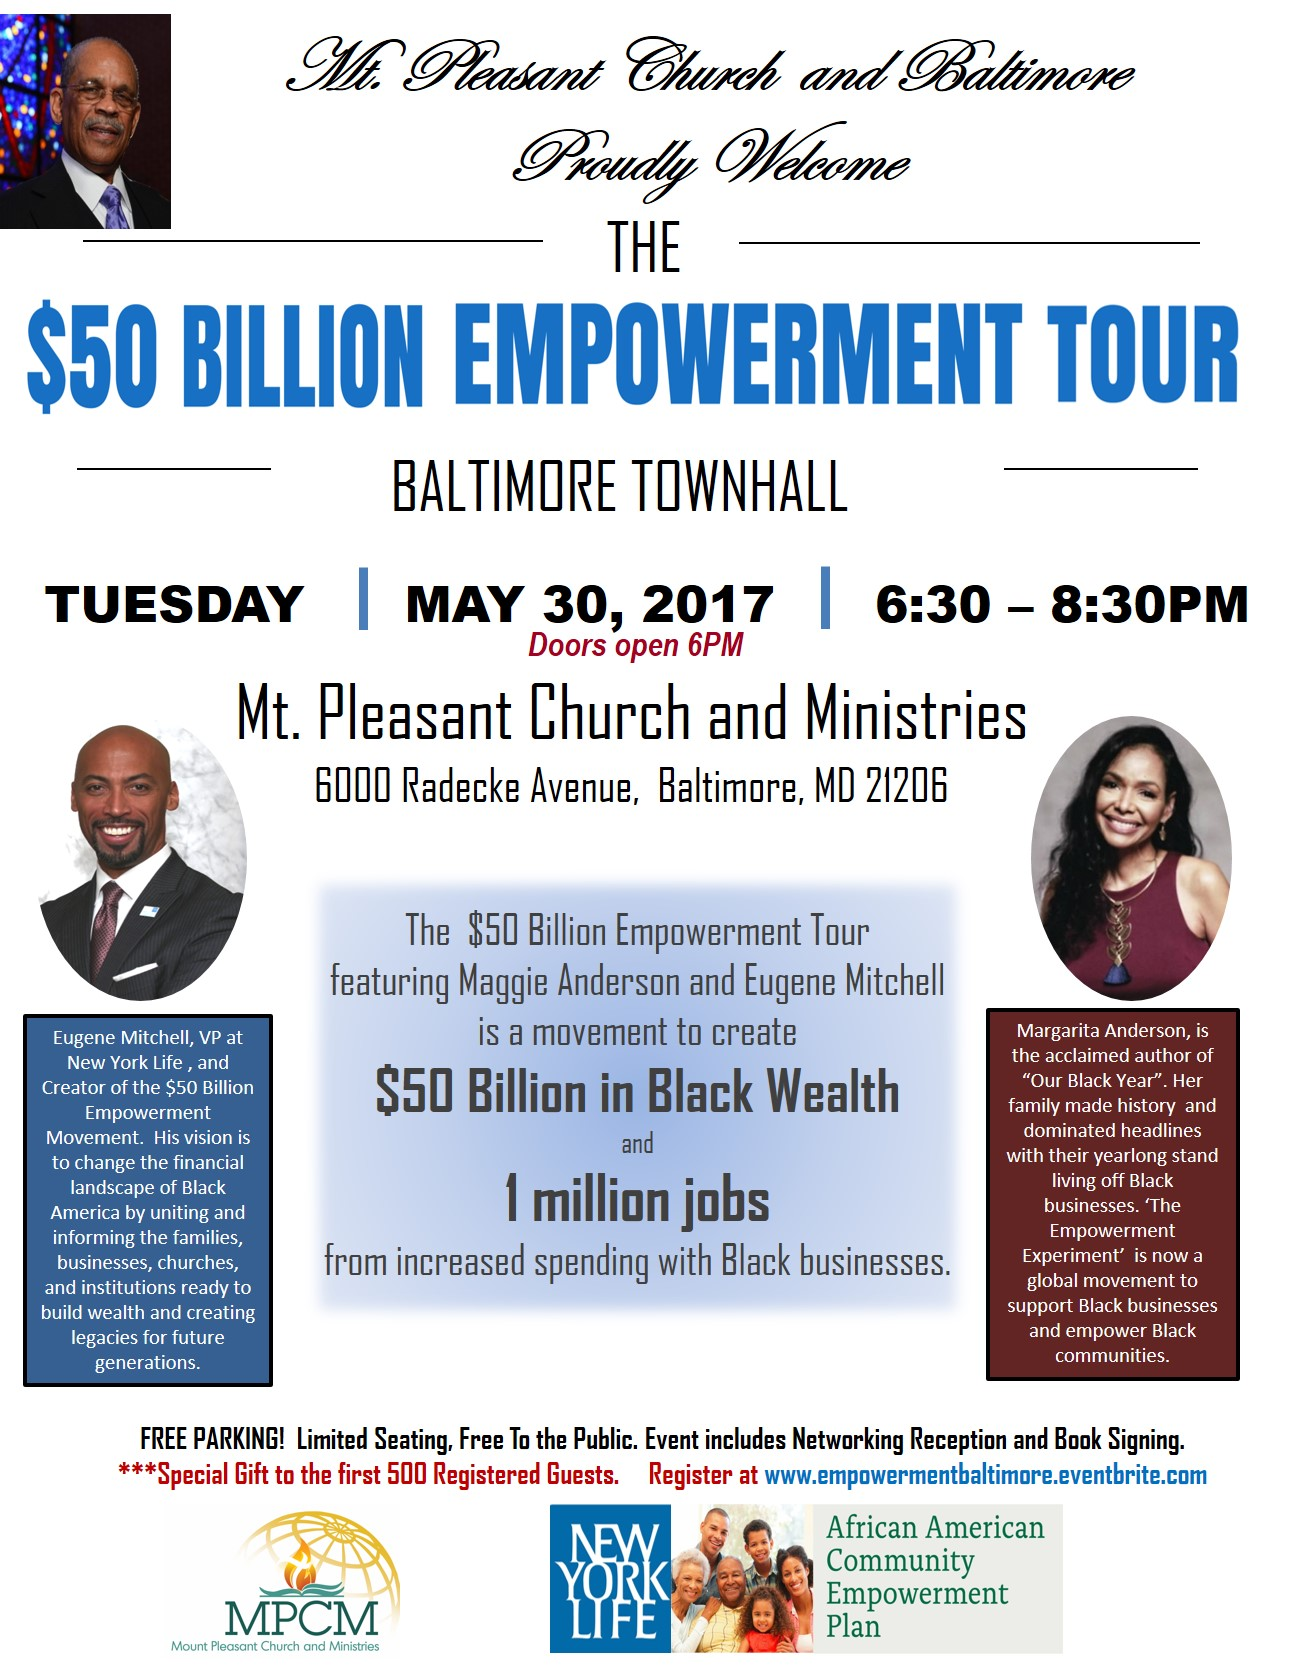 May 30 The 50Billion Empowerment Tour comes to Baltimore